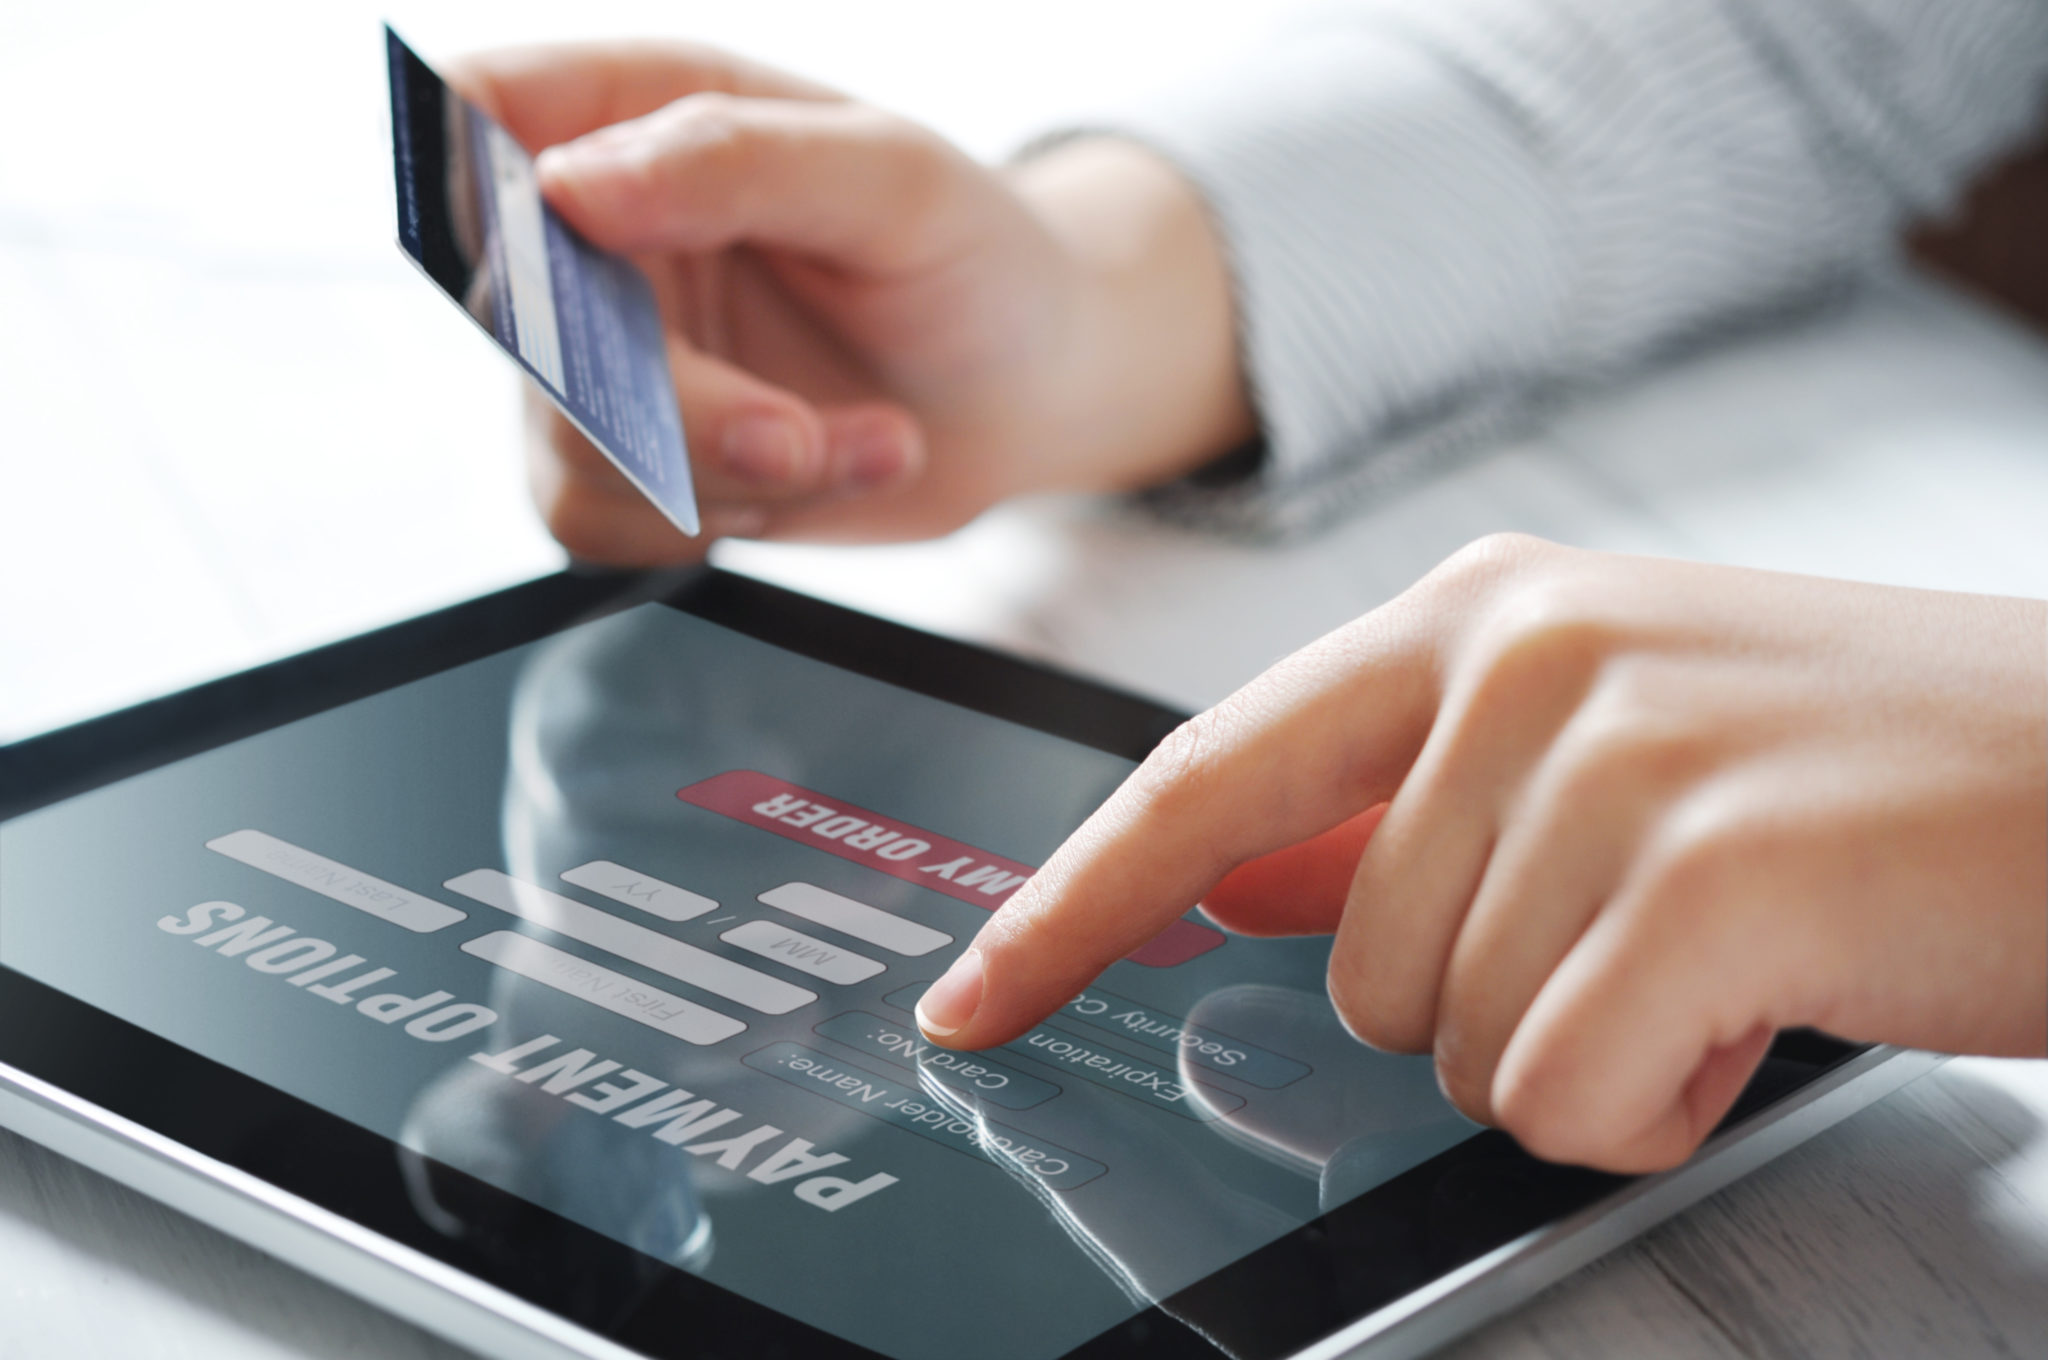 Electronic payments / payment